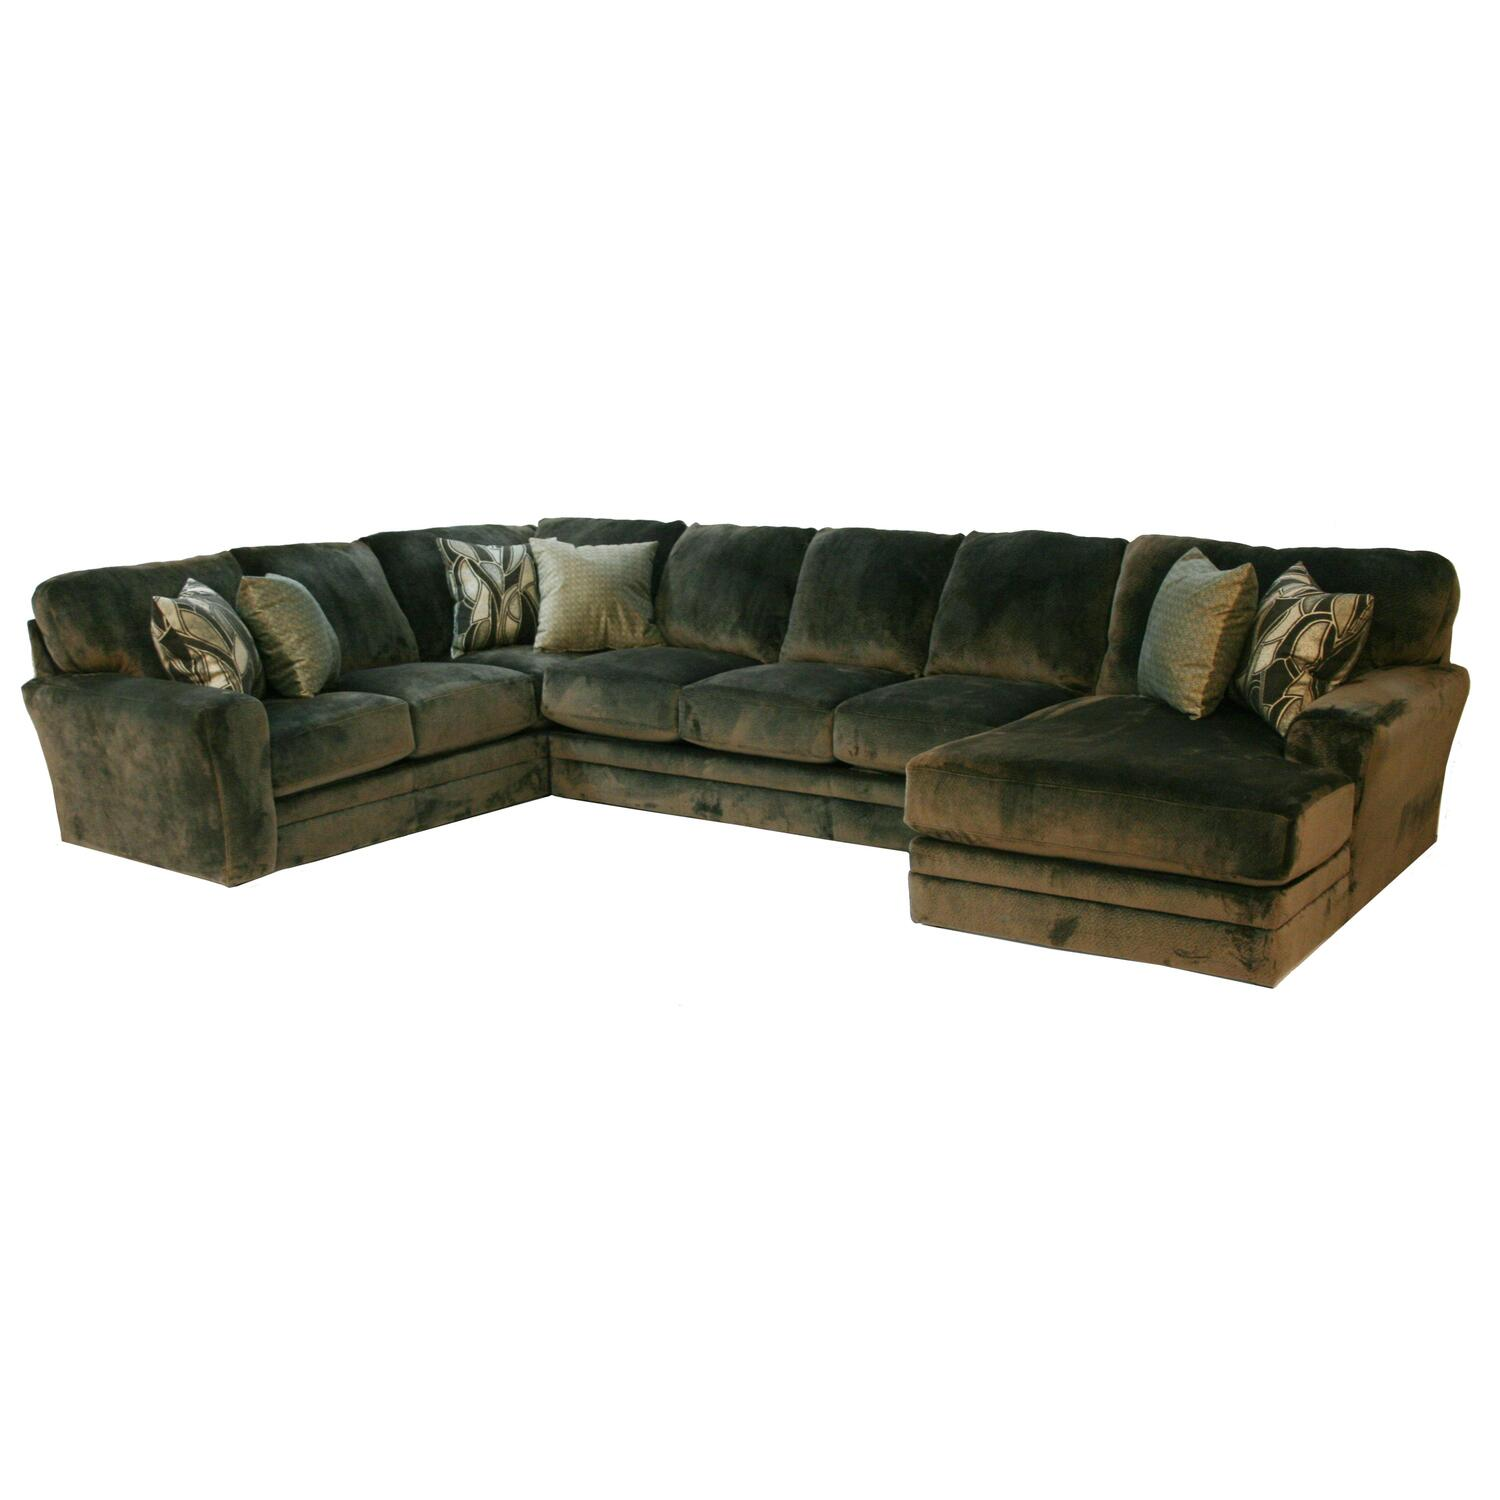 jackson furniture sectional sofas leather sofa loveseat chair and ottoman everest 3 pc by oj commerce